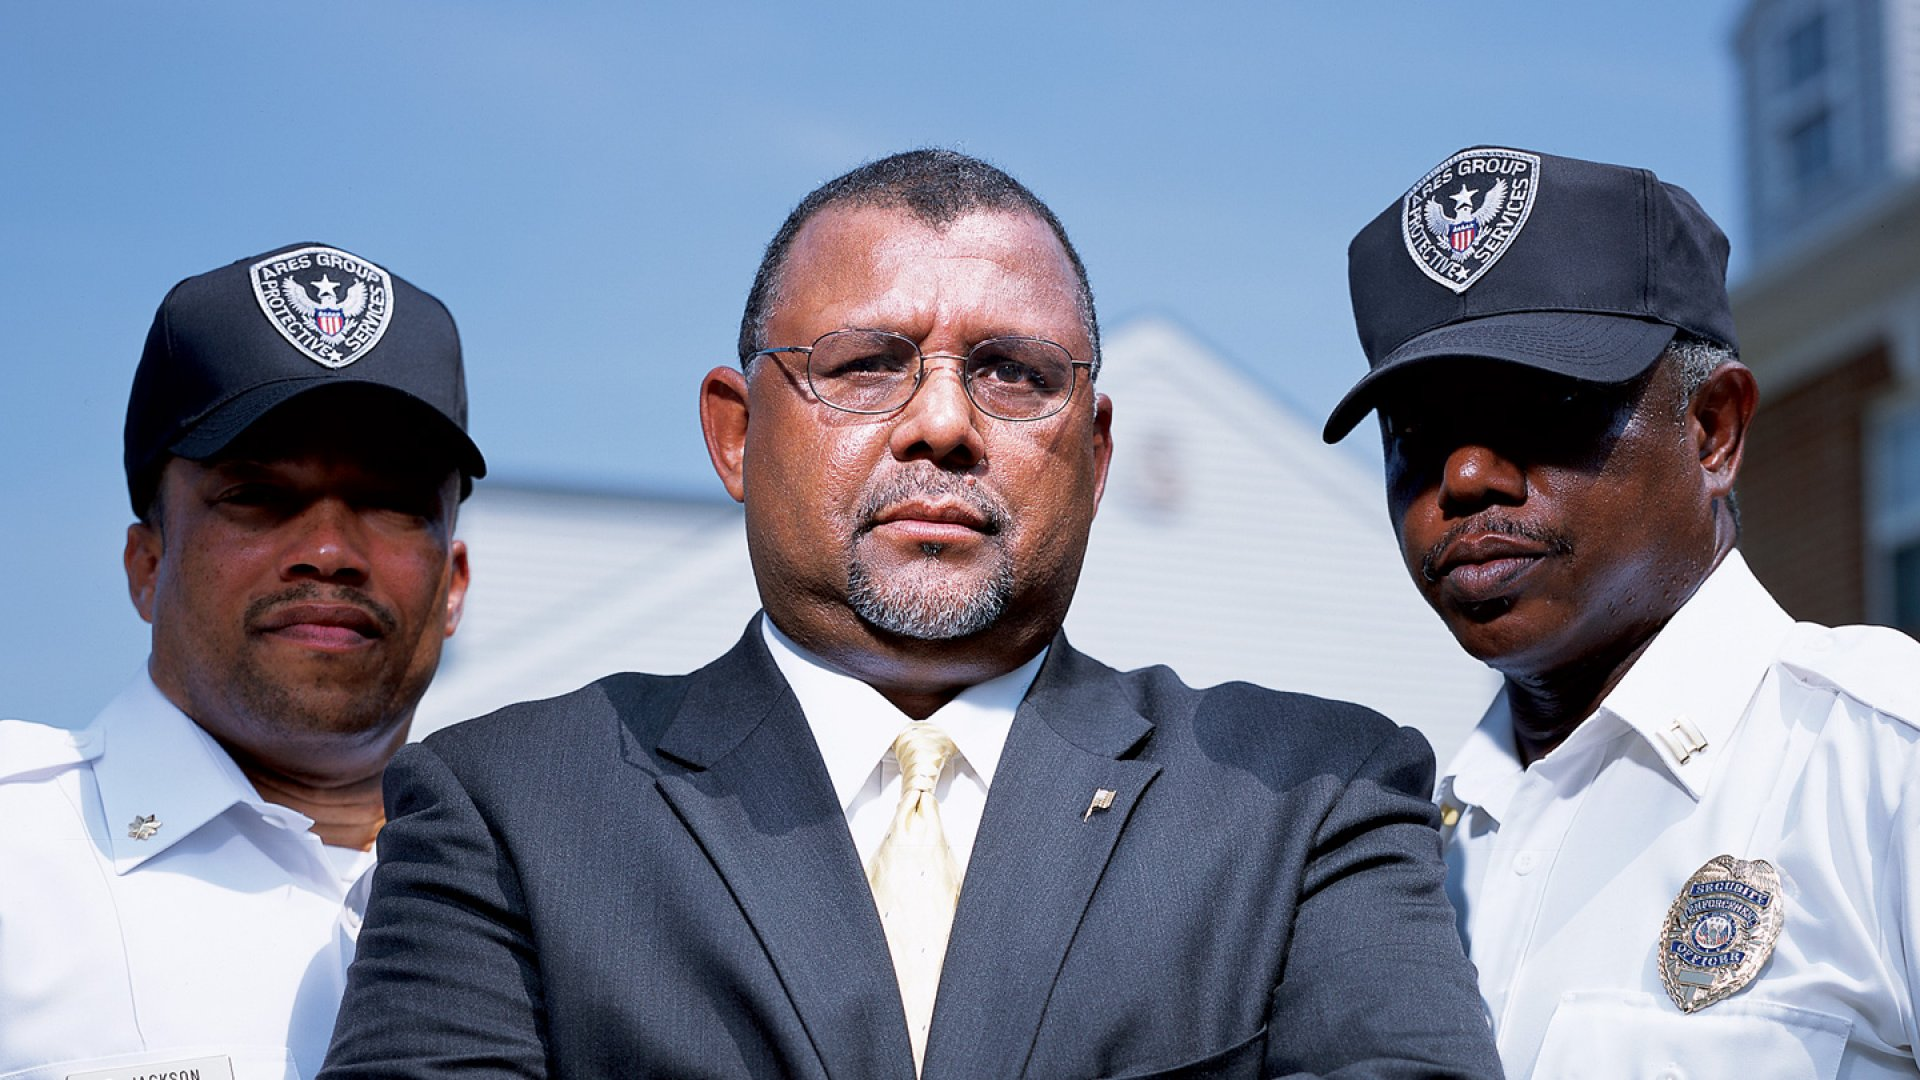 SERIOUS BUSINESS Bruce Moore, center, with field supervisors Eric Jackson, left, and Emanuel Lewis.